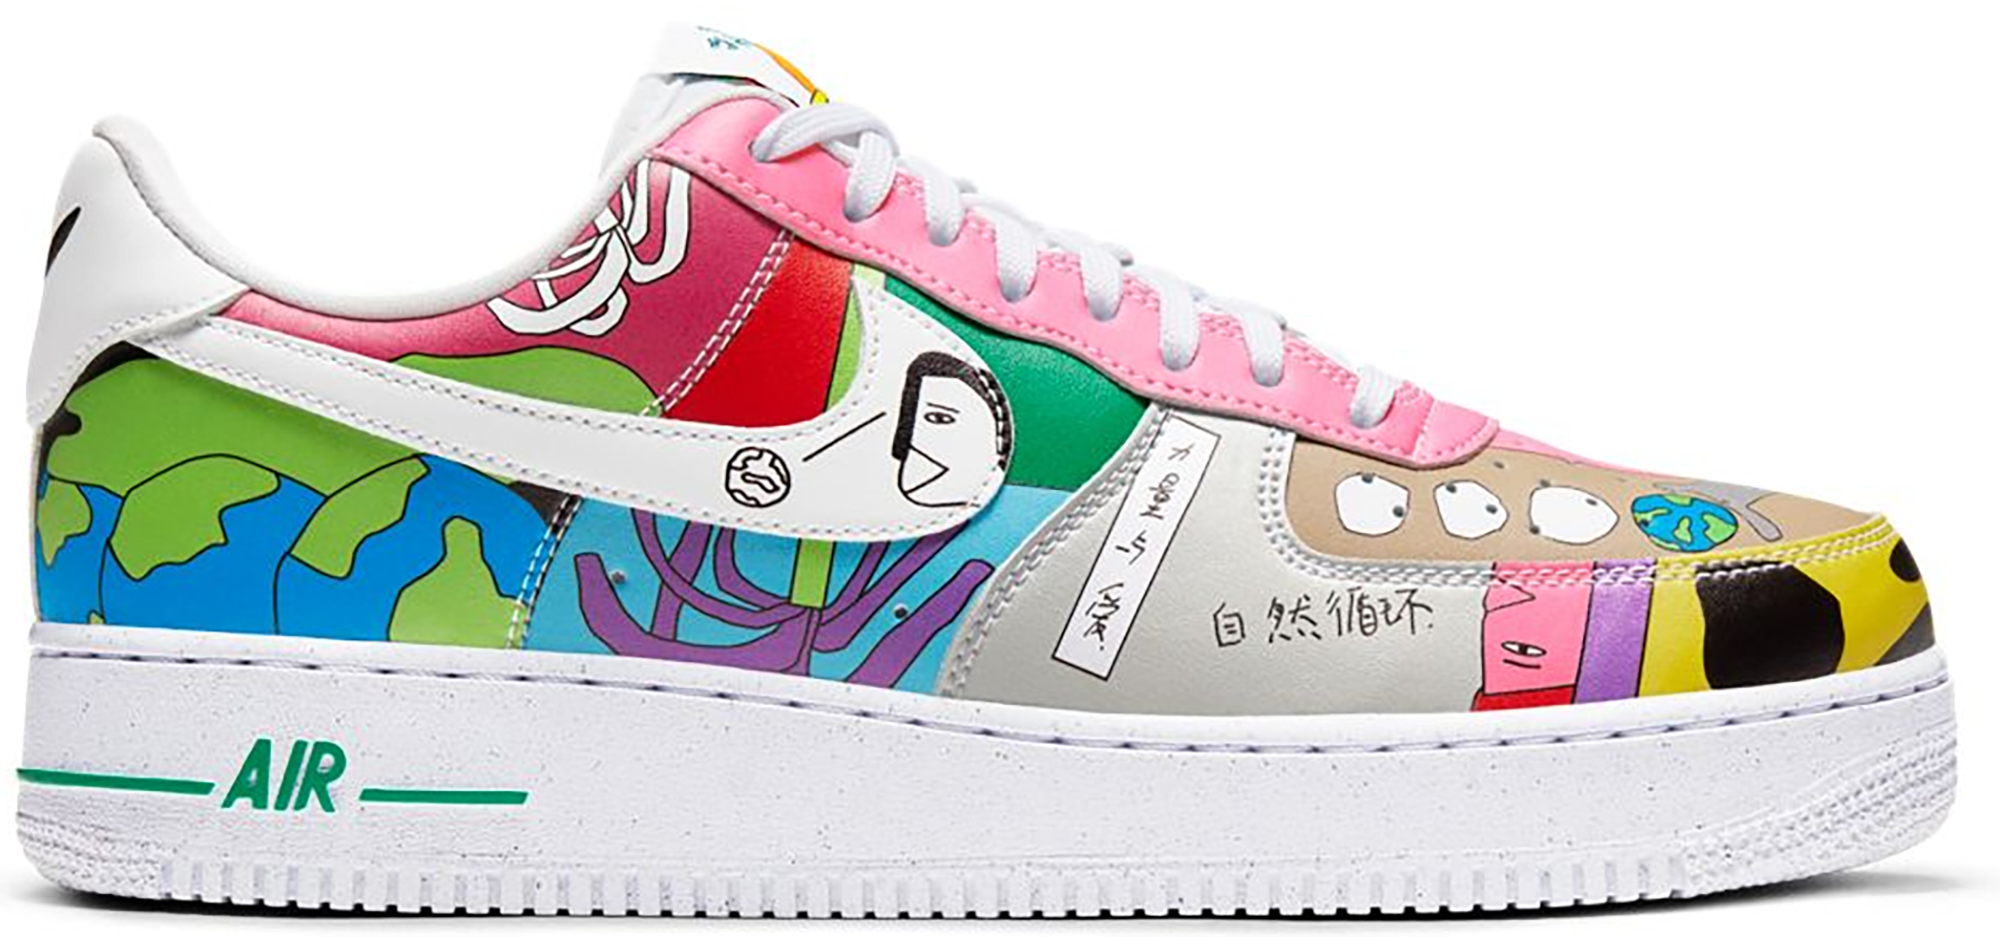 Pre-owned Nike Air Force 1 Flyleather Ruohan Wang In Multi-color ...